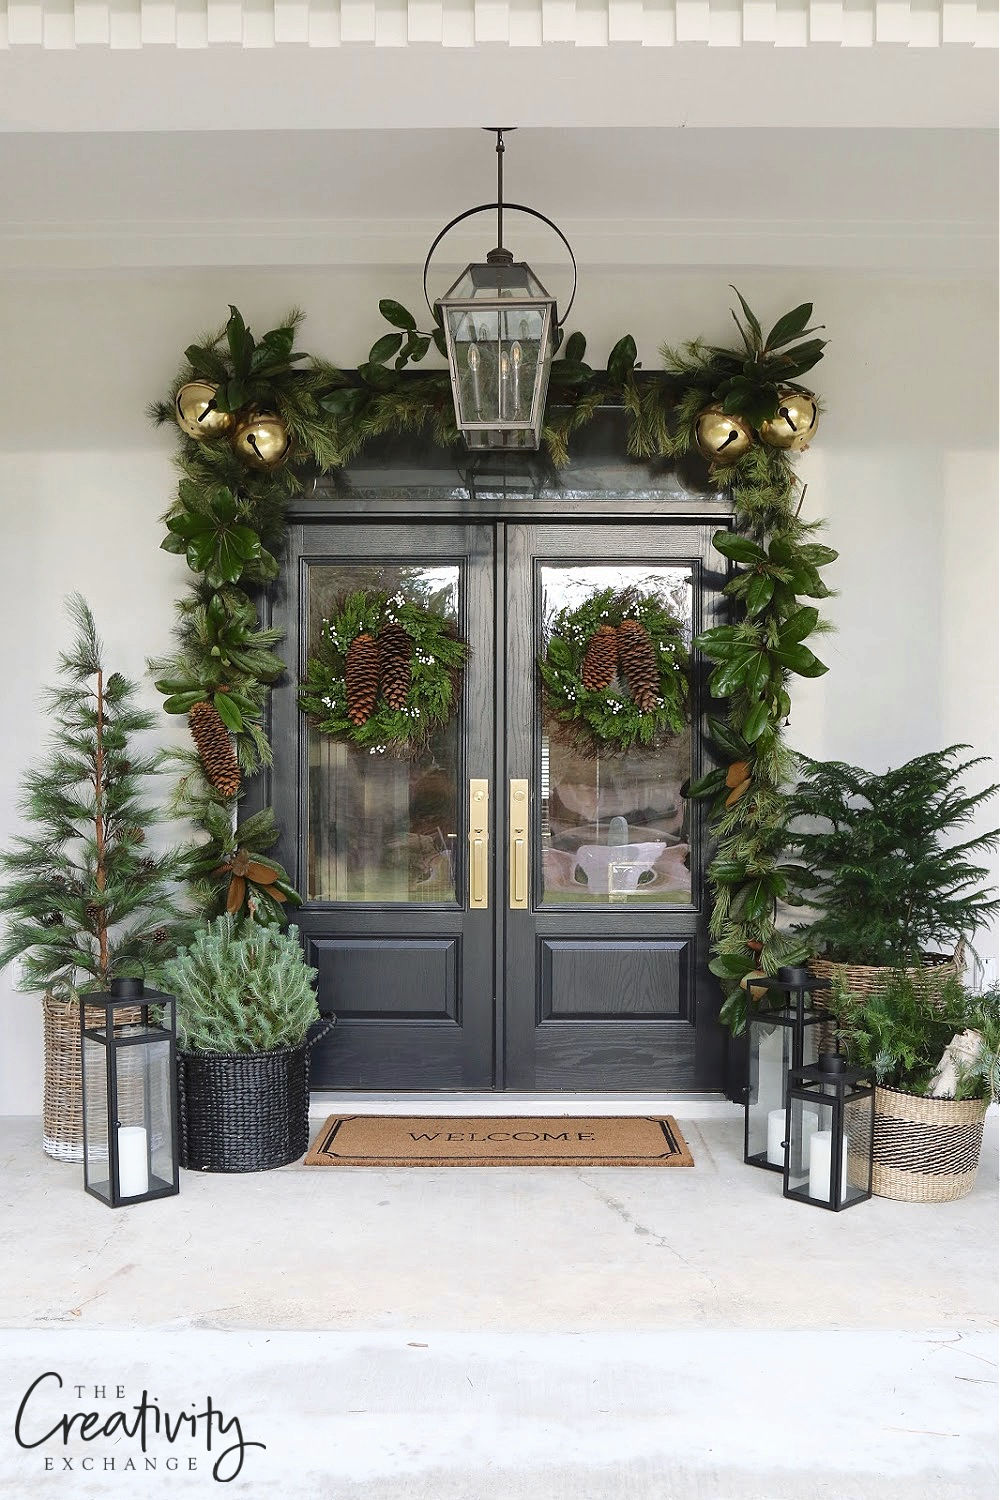 Love this classic Christmas porch with a twist! The giant pine cones and jingle bells add a festive touch #christmas #christmasporch #outdoorchristmasdecor #farmhousechristmas #classicchristmas #diychristmas #christmaswreath